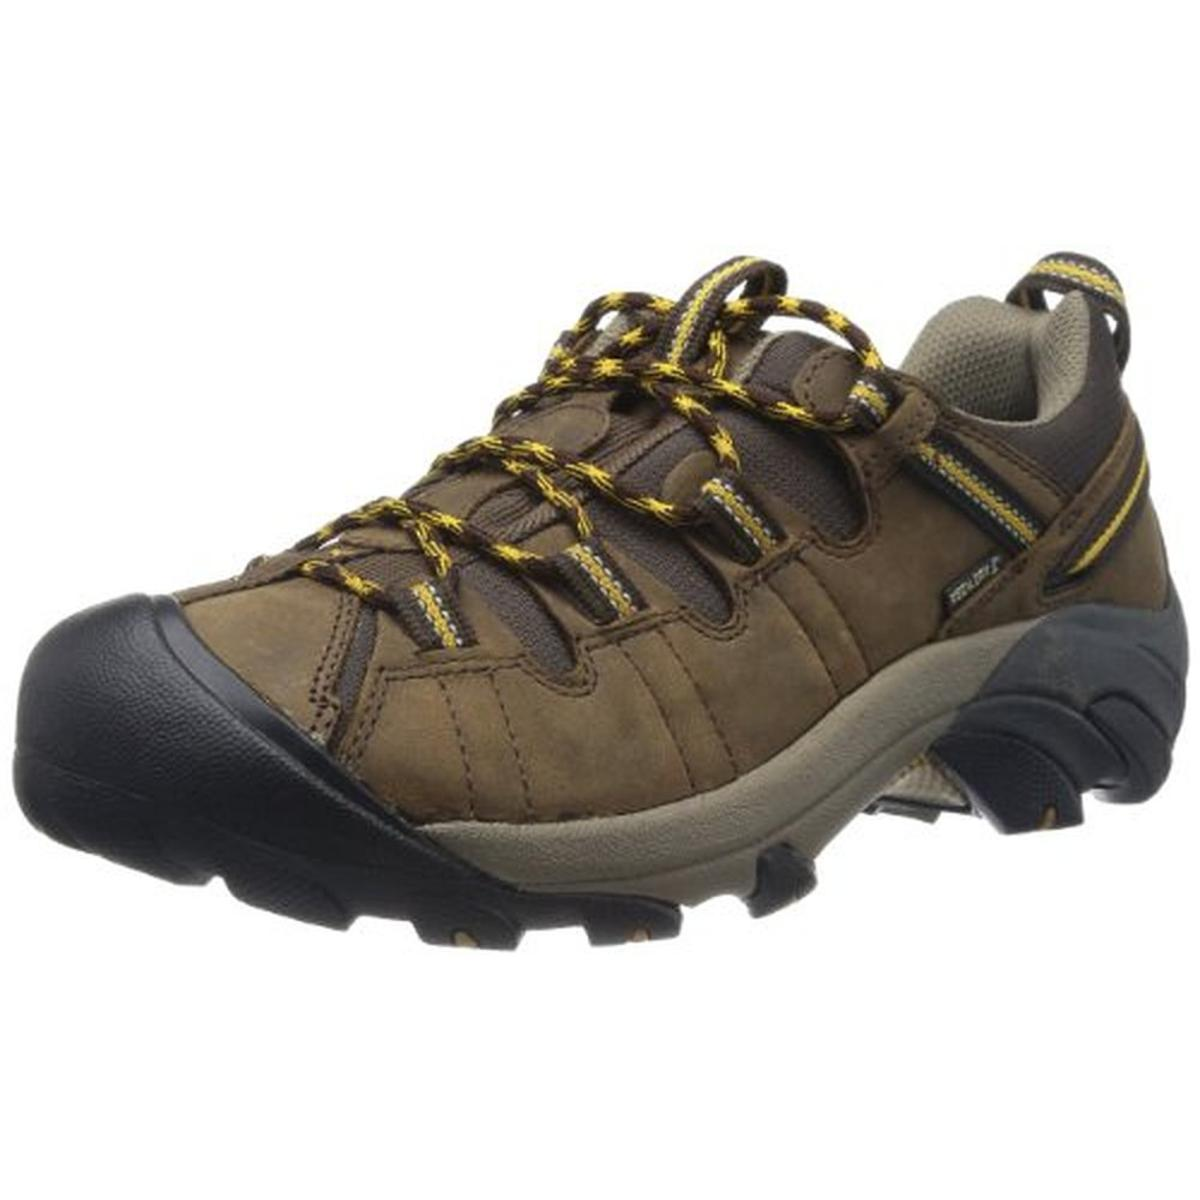 Keen Mens Targhee II Leather Distressed Hiking, Trail Shoes